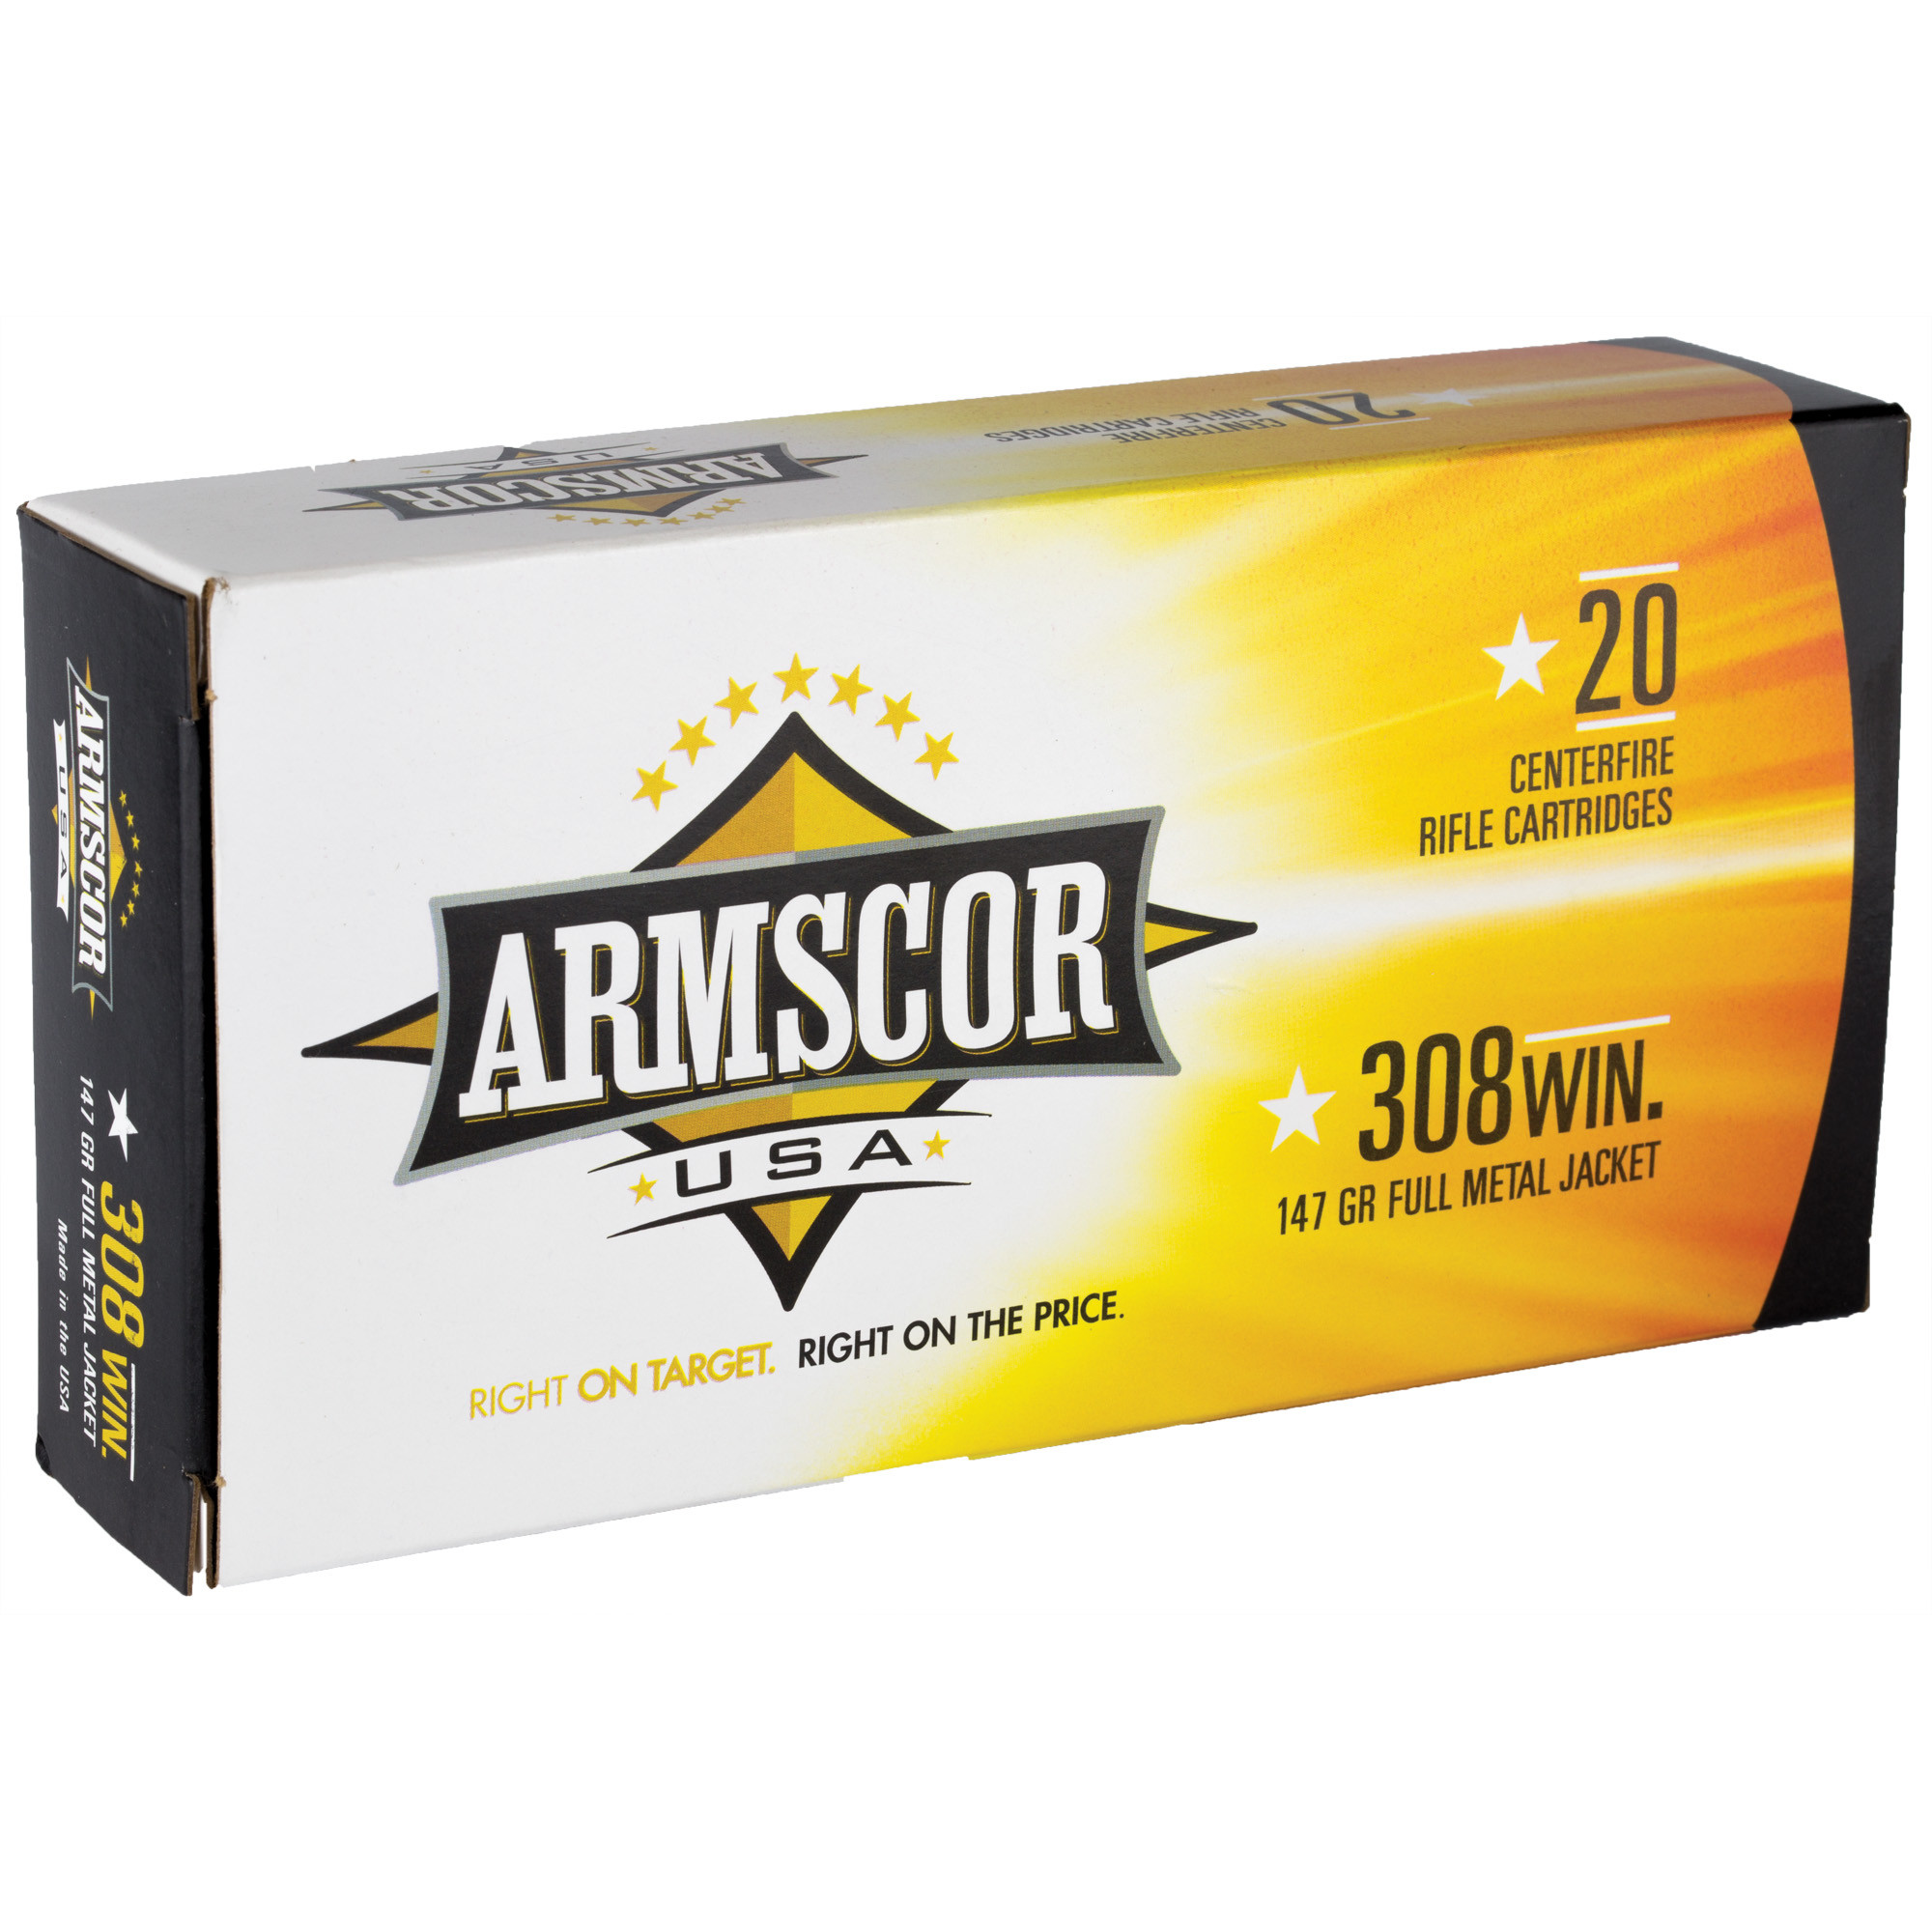 Armscor USA Ammunition 308 Winchester 147GR Full Metal Jacket Per 20